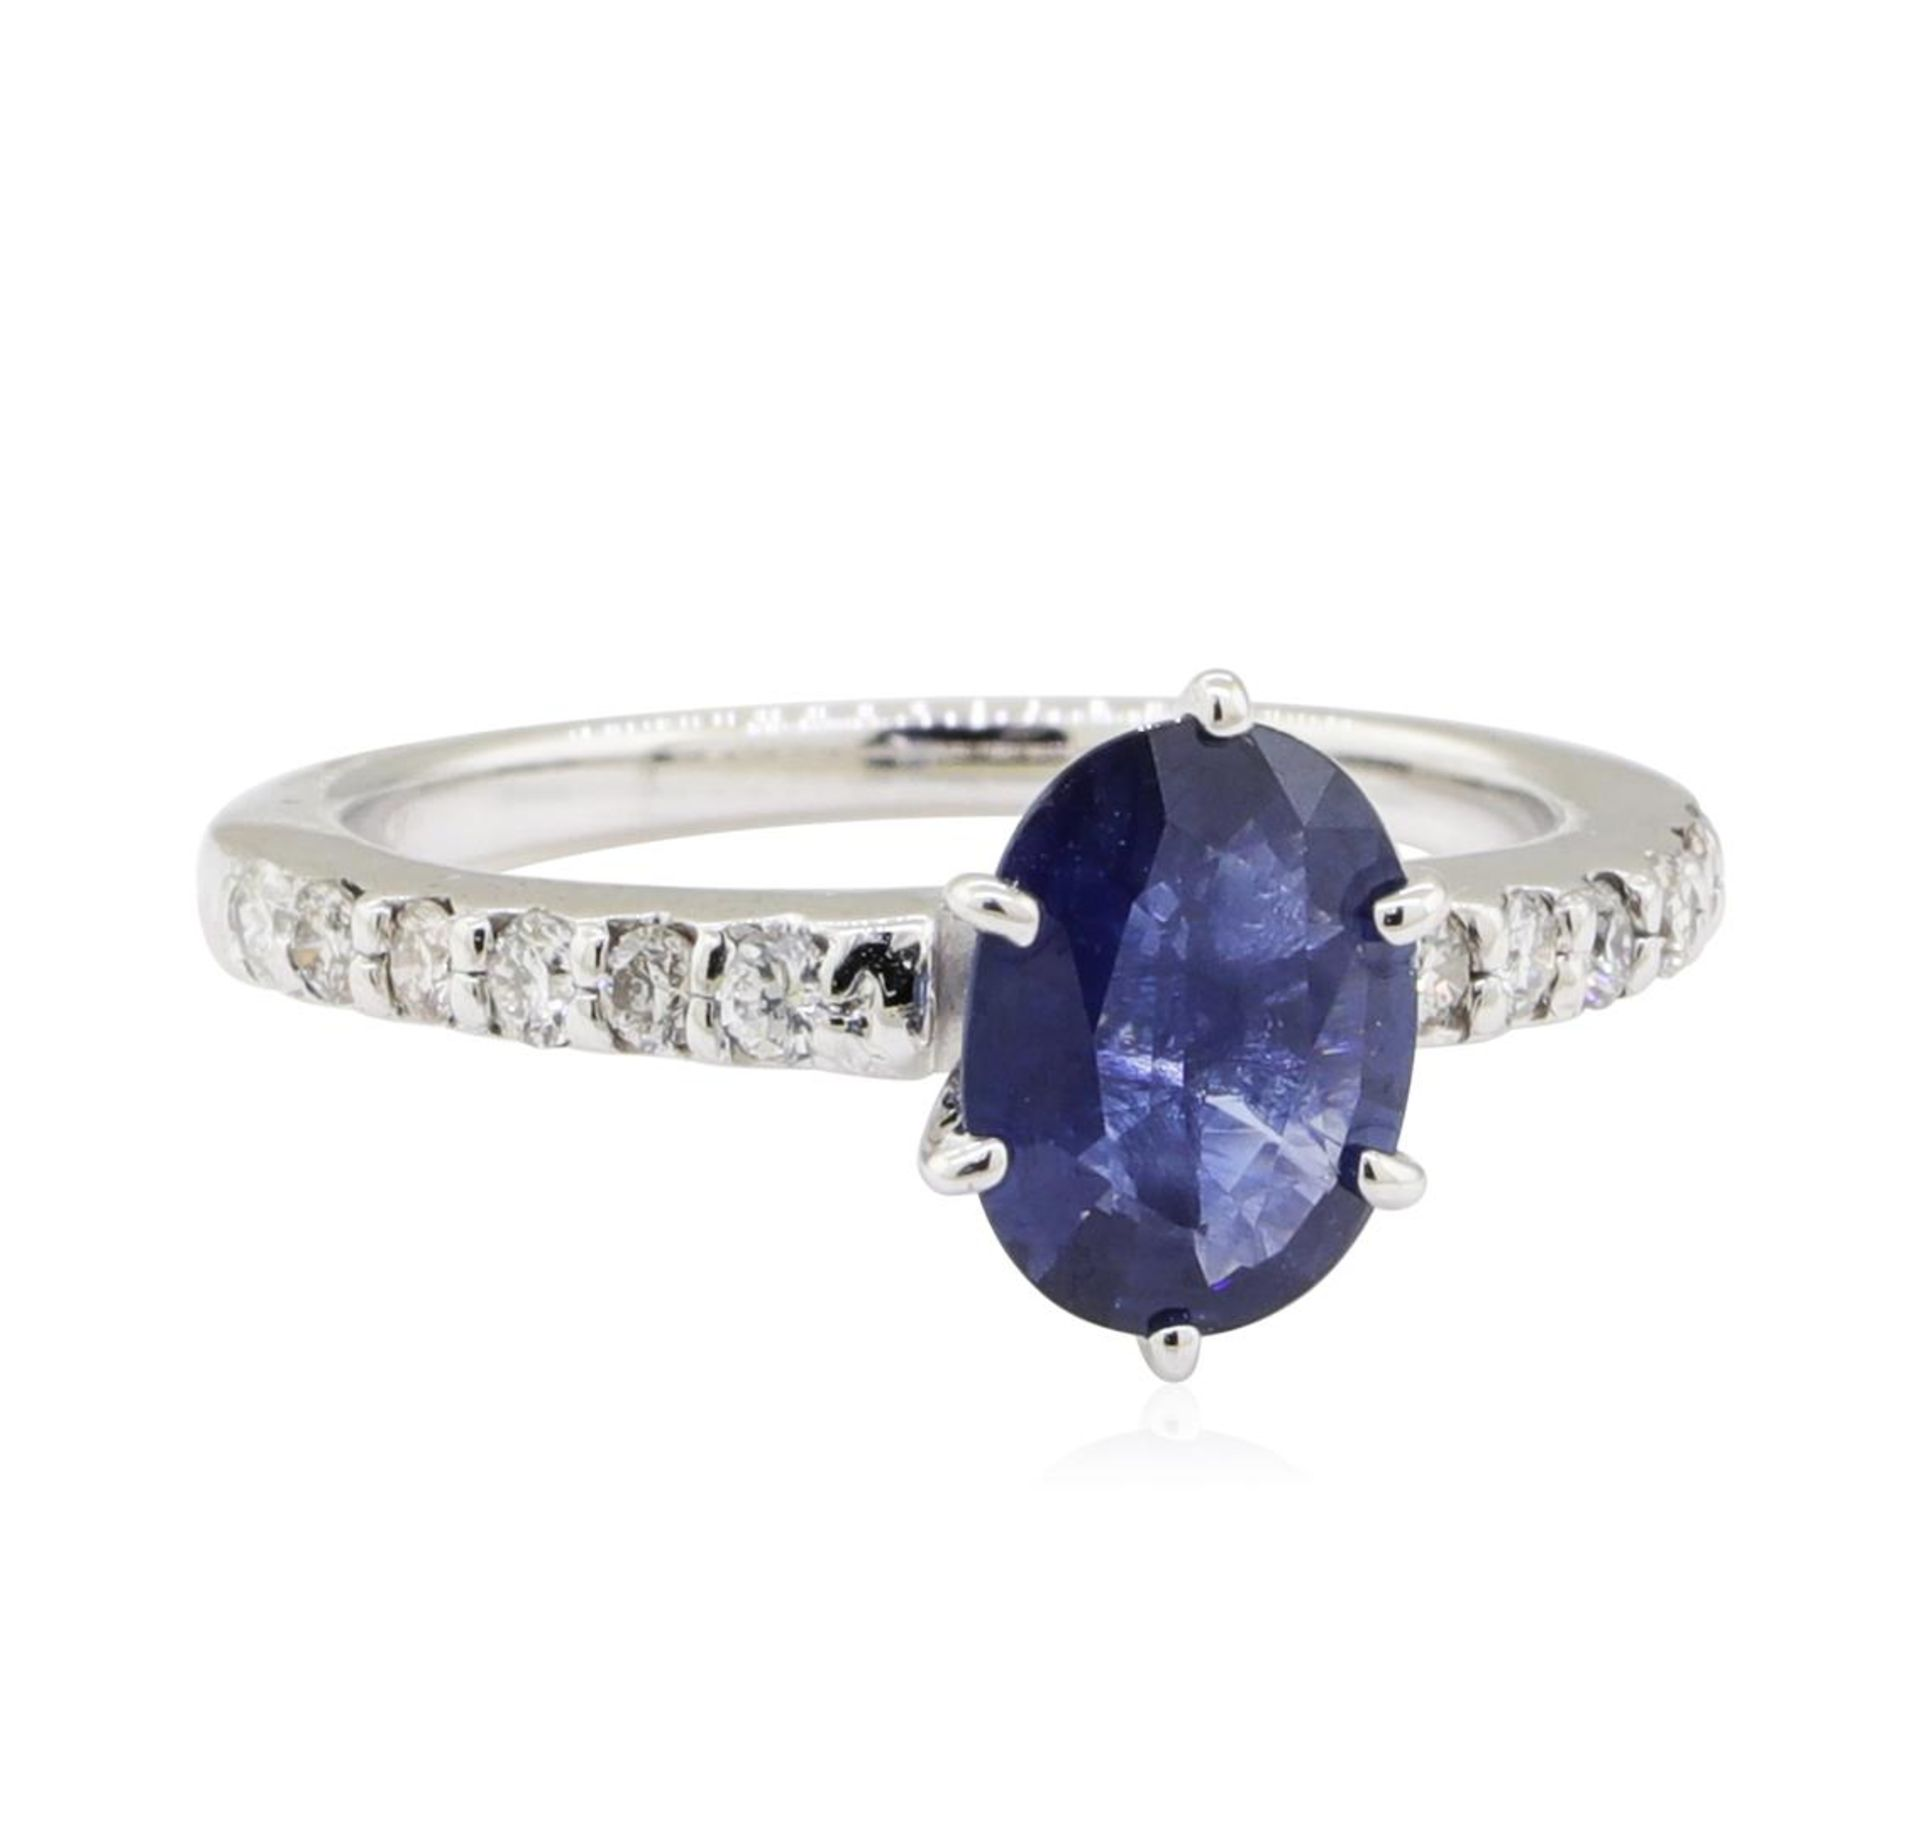 1.25ctw Sapphire and Diamond Ring - 14KT White Gold